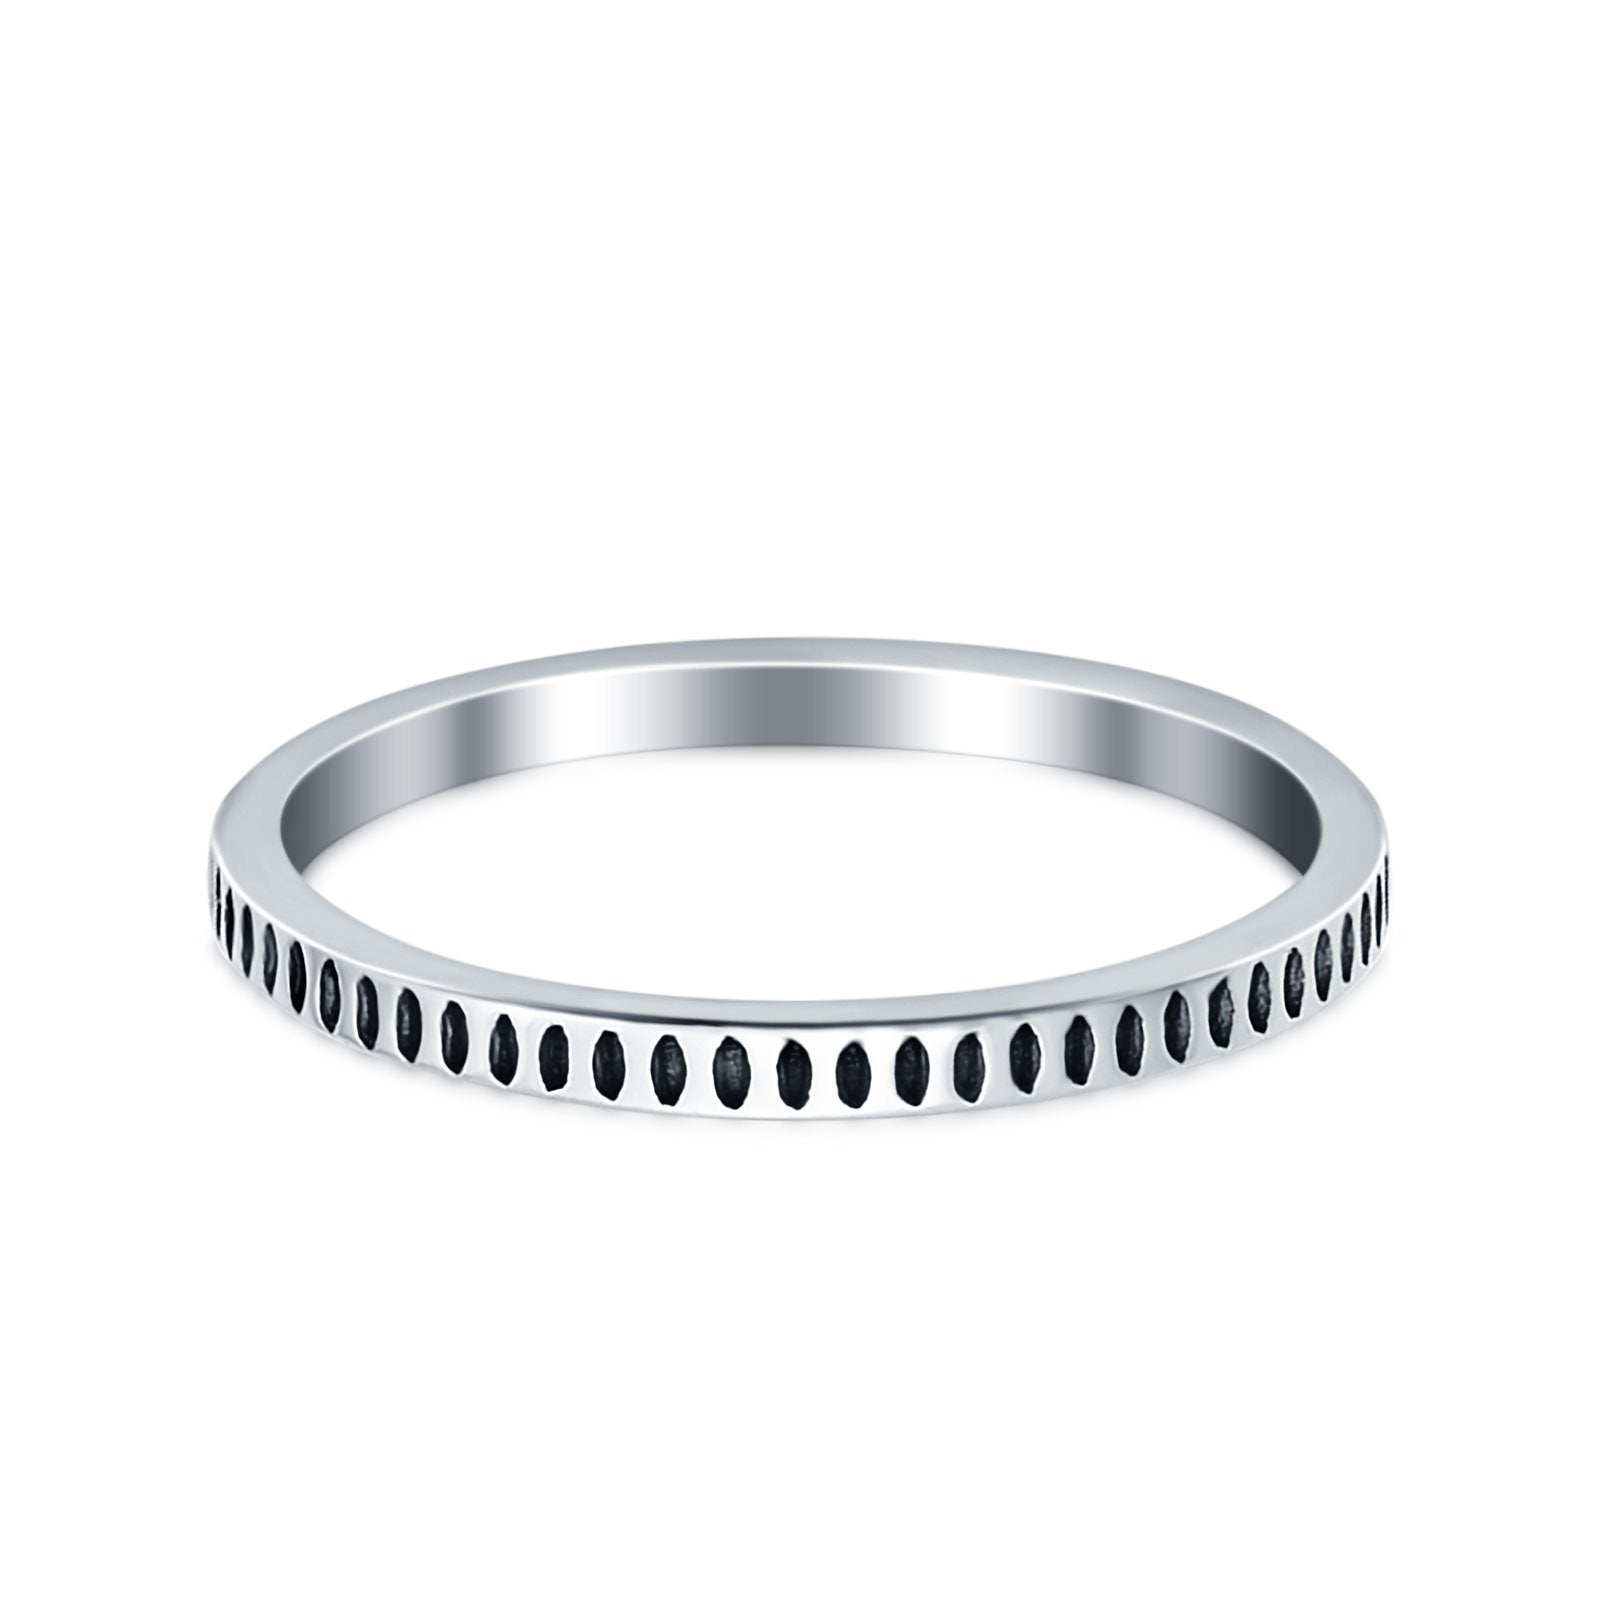 Oxidized Plain Band Ring 925 Sterling Silver